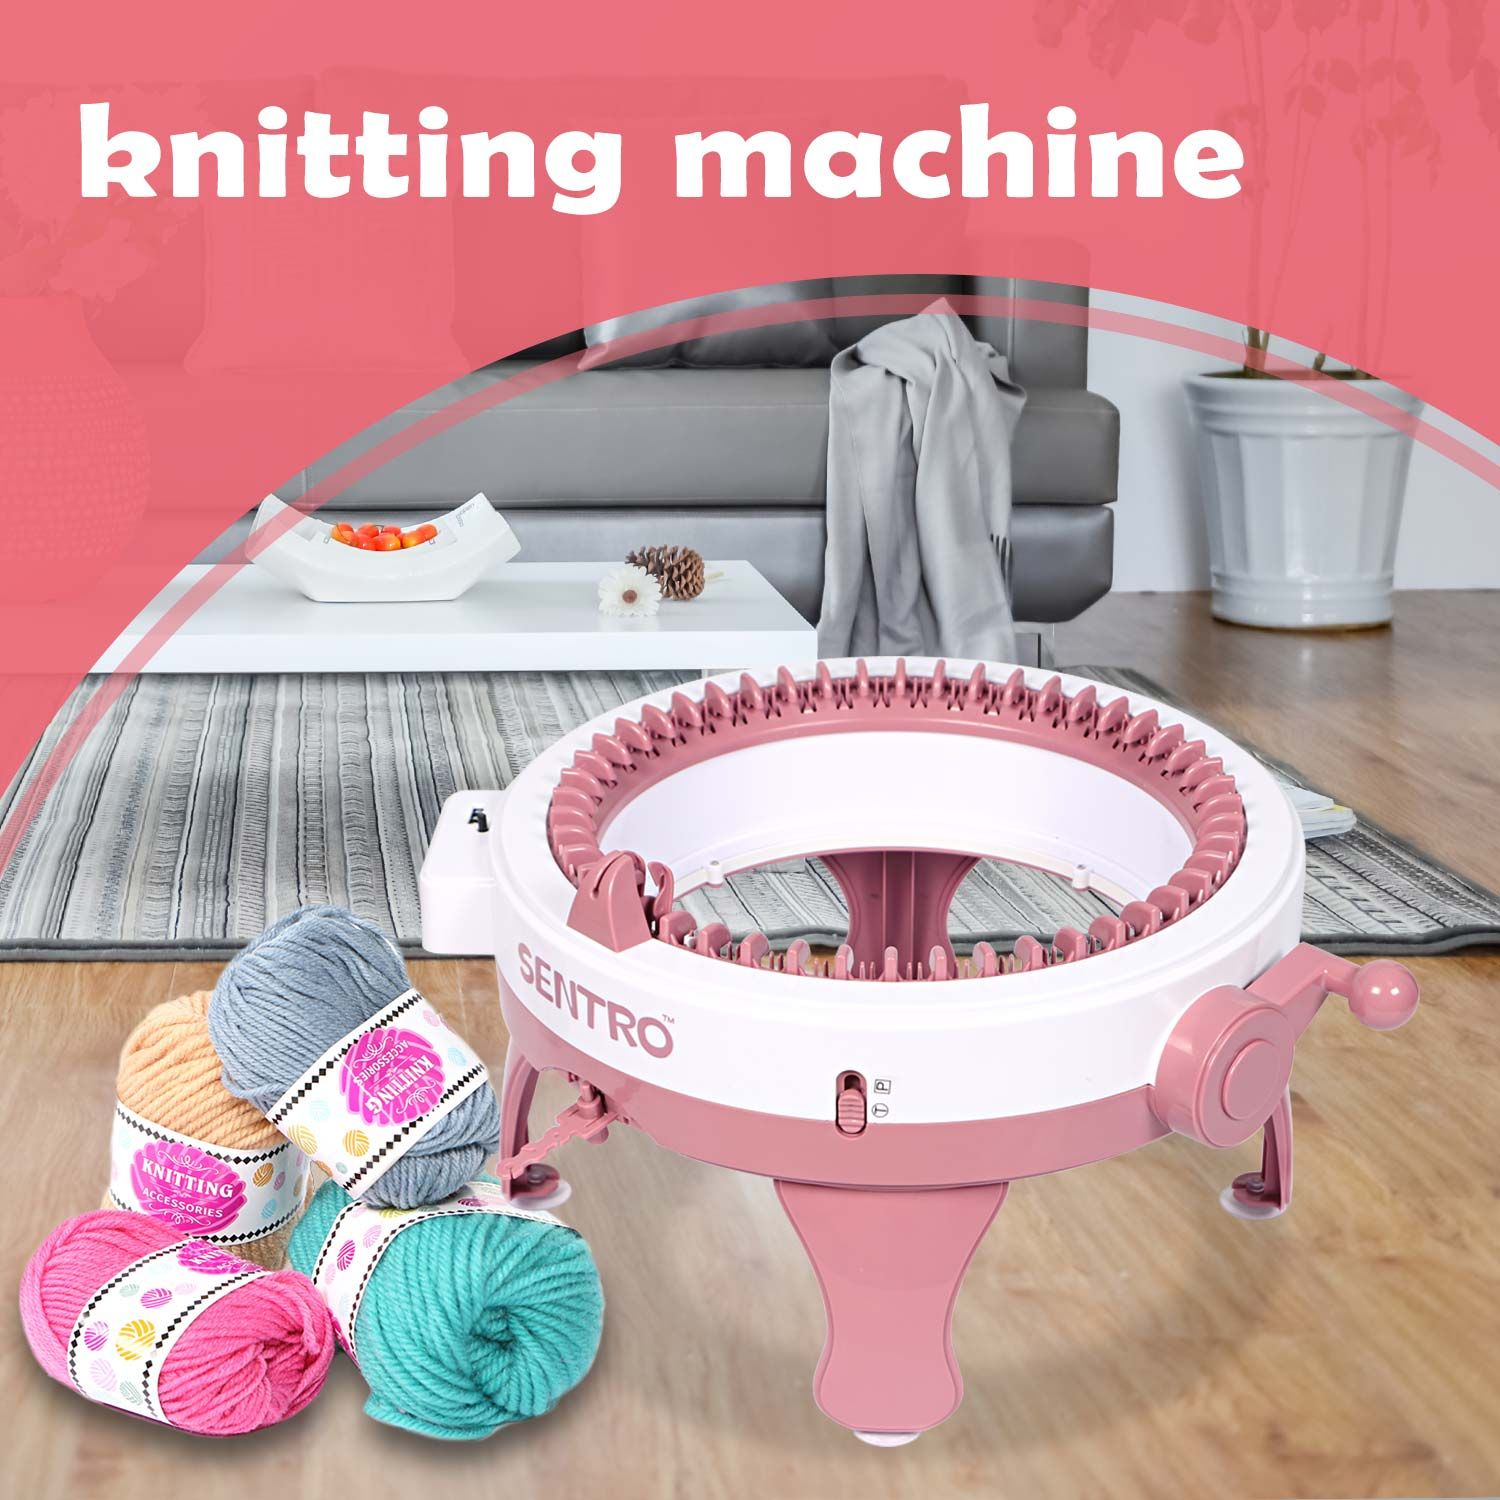 Knitting Machine 40 Needles Smart Weaving Loom Round Knitting Machines Knitting Loom Machines Kit Weaving Loom for Adults or Kids Knitting Board Rotating Double Knit Loom for Sock//Hat//Pumpkin